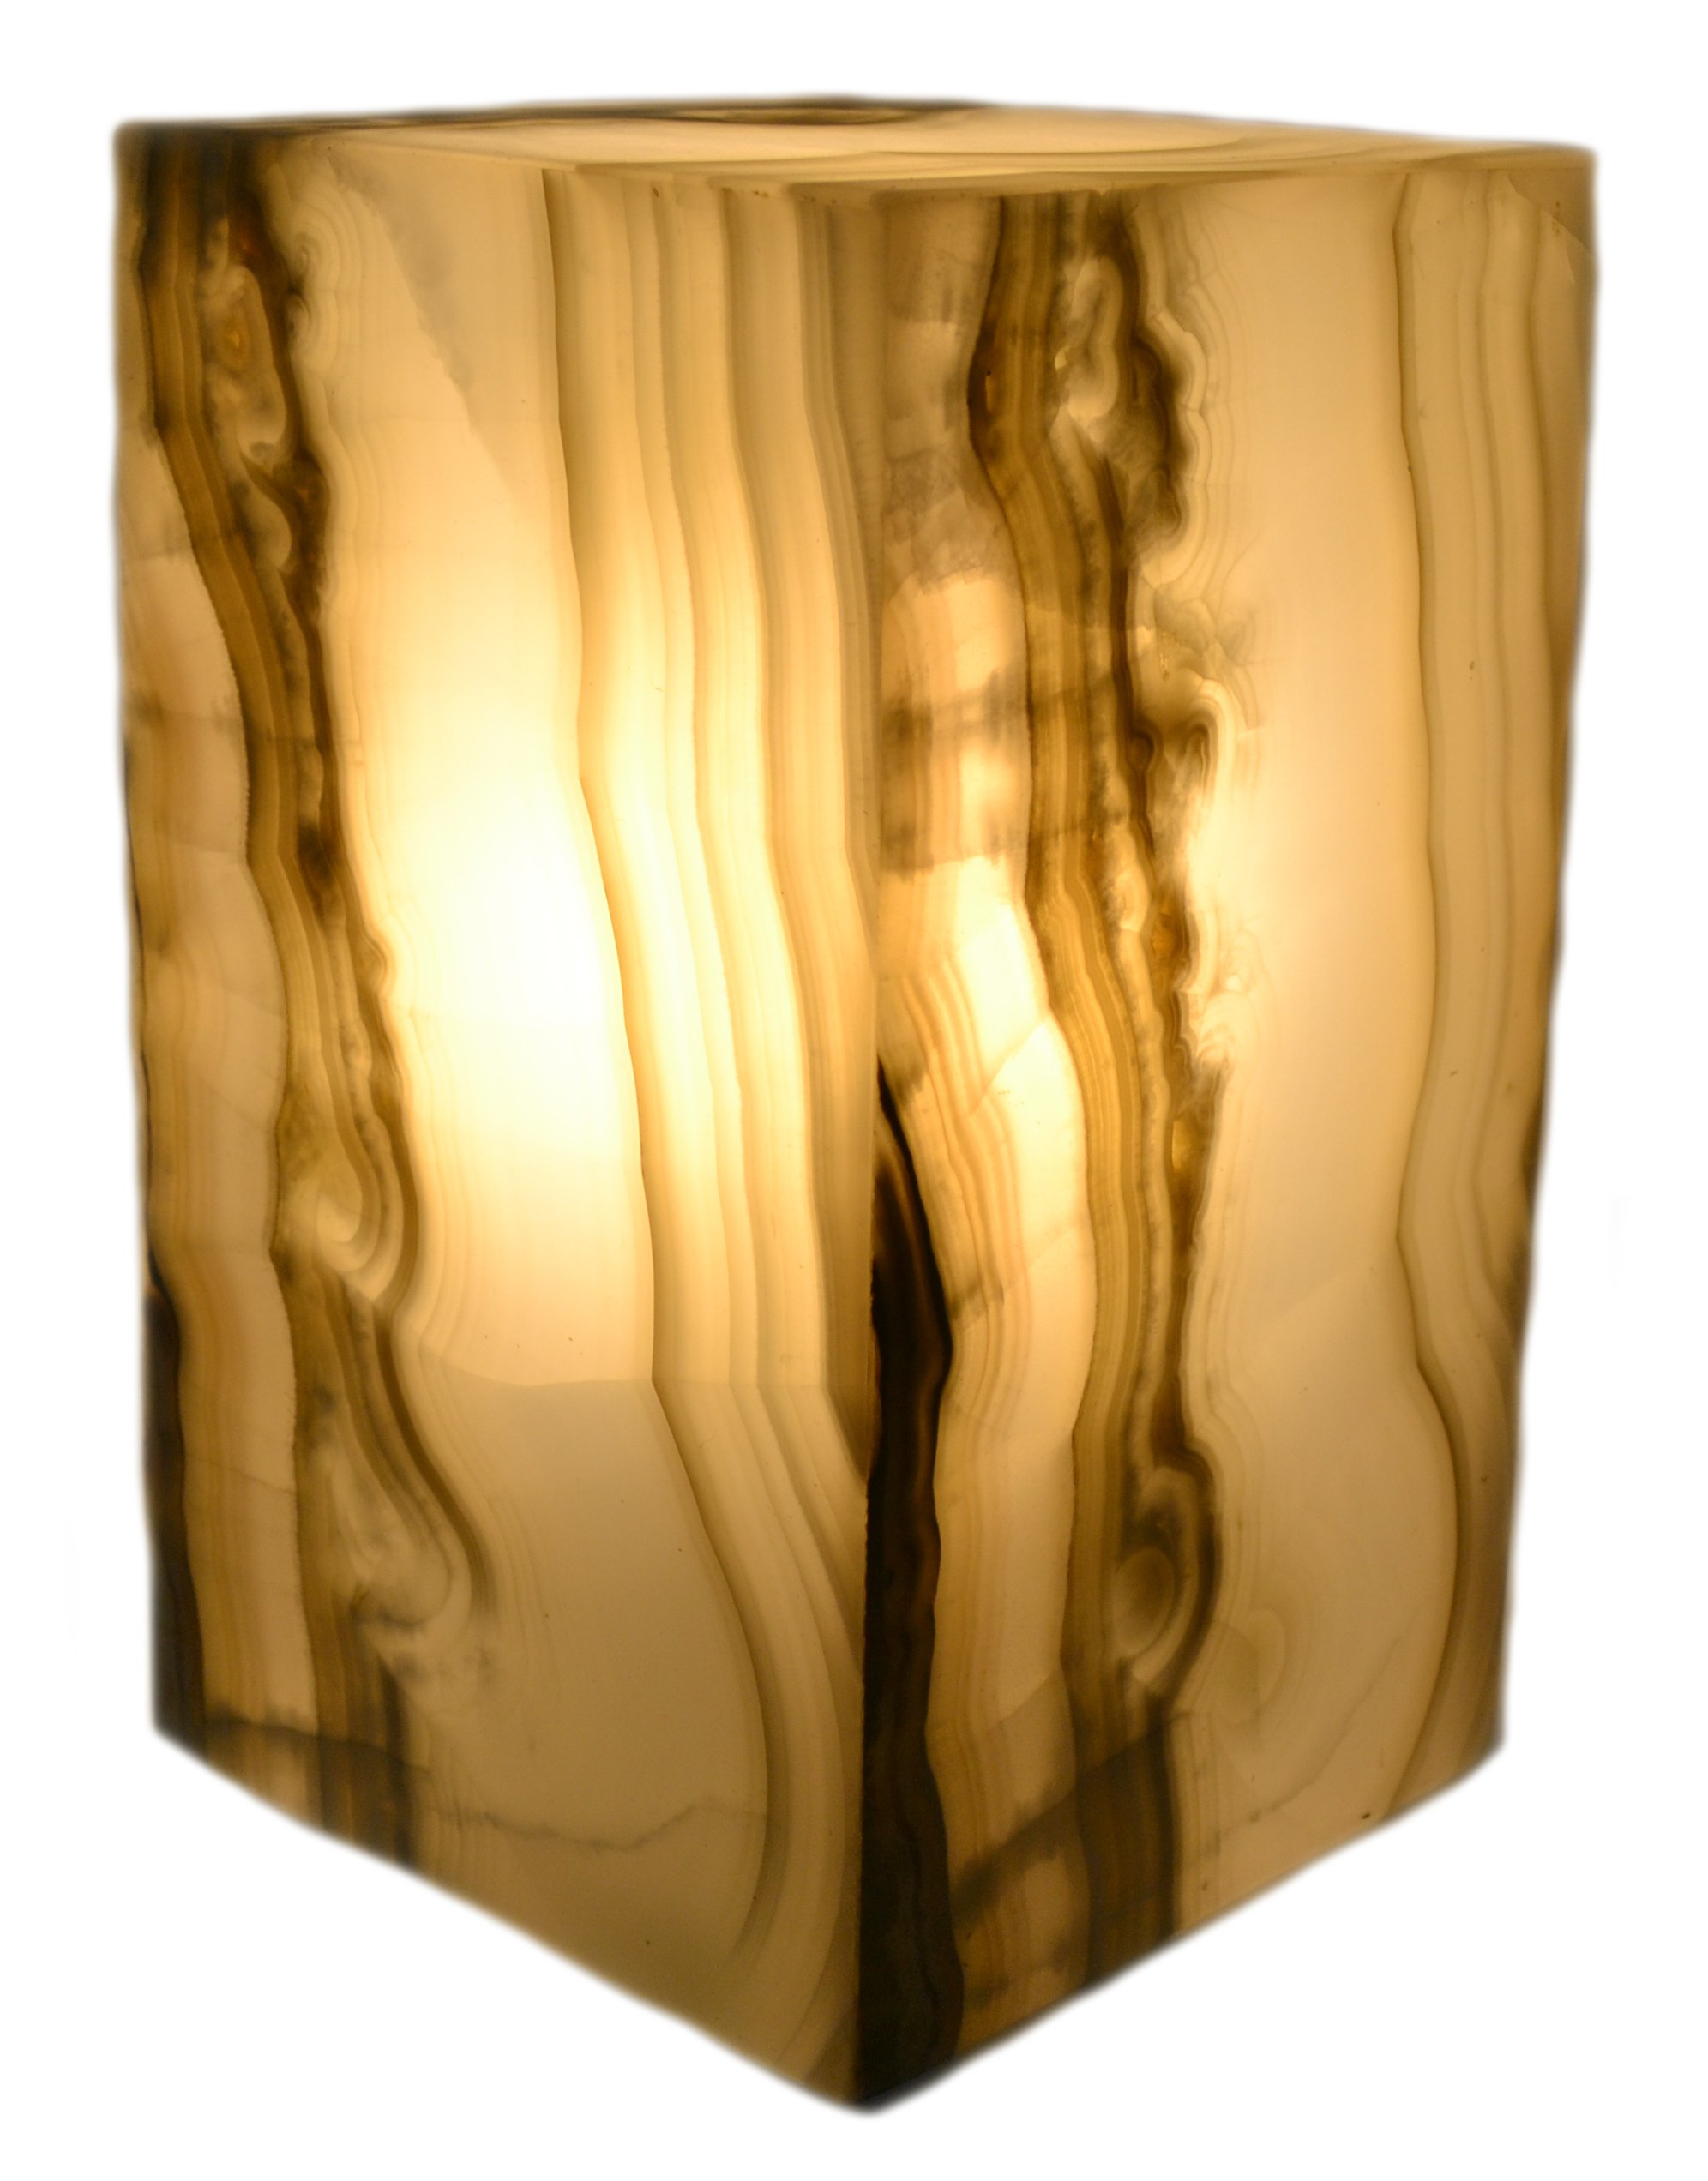 Misty Grey Stone Prism Lamp, 10'' Tall, Carved From Real North American Onyx - The Artisan Mined Series by hBAR by hBARSCI